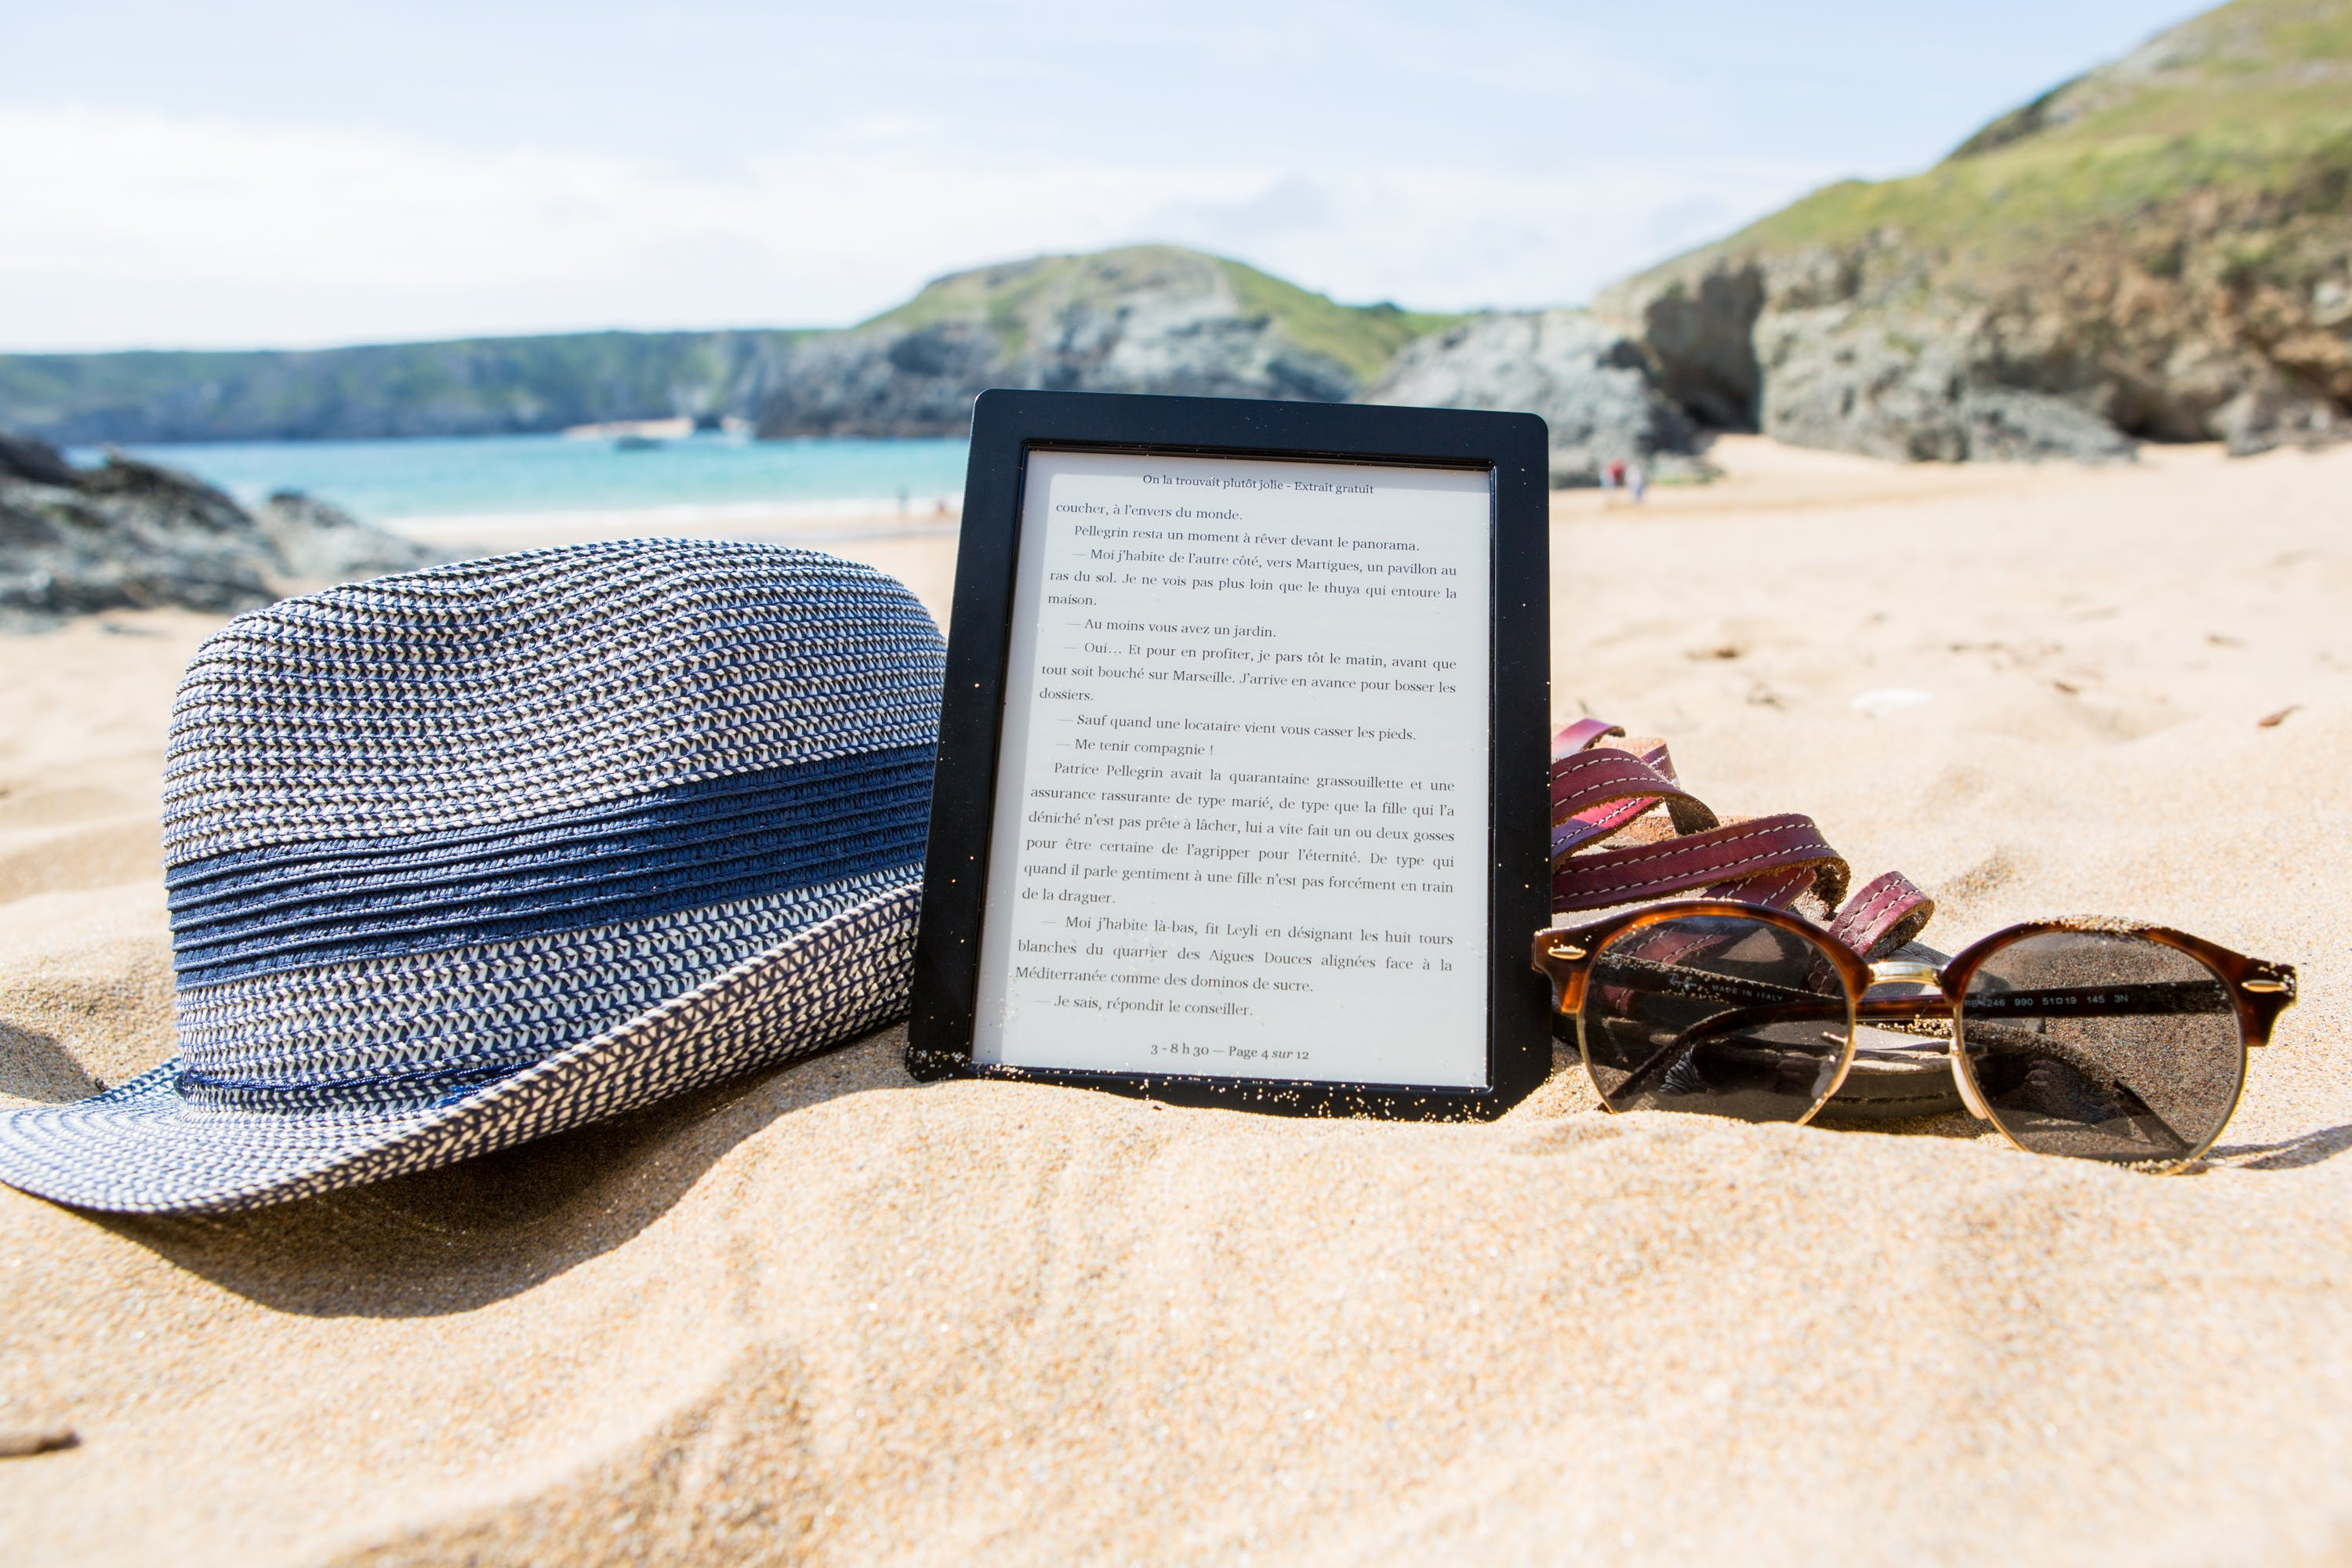 Shallowfocus Photography of Fedora Hat, Photo Frame, and Sunglasses on Beach